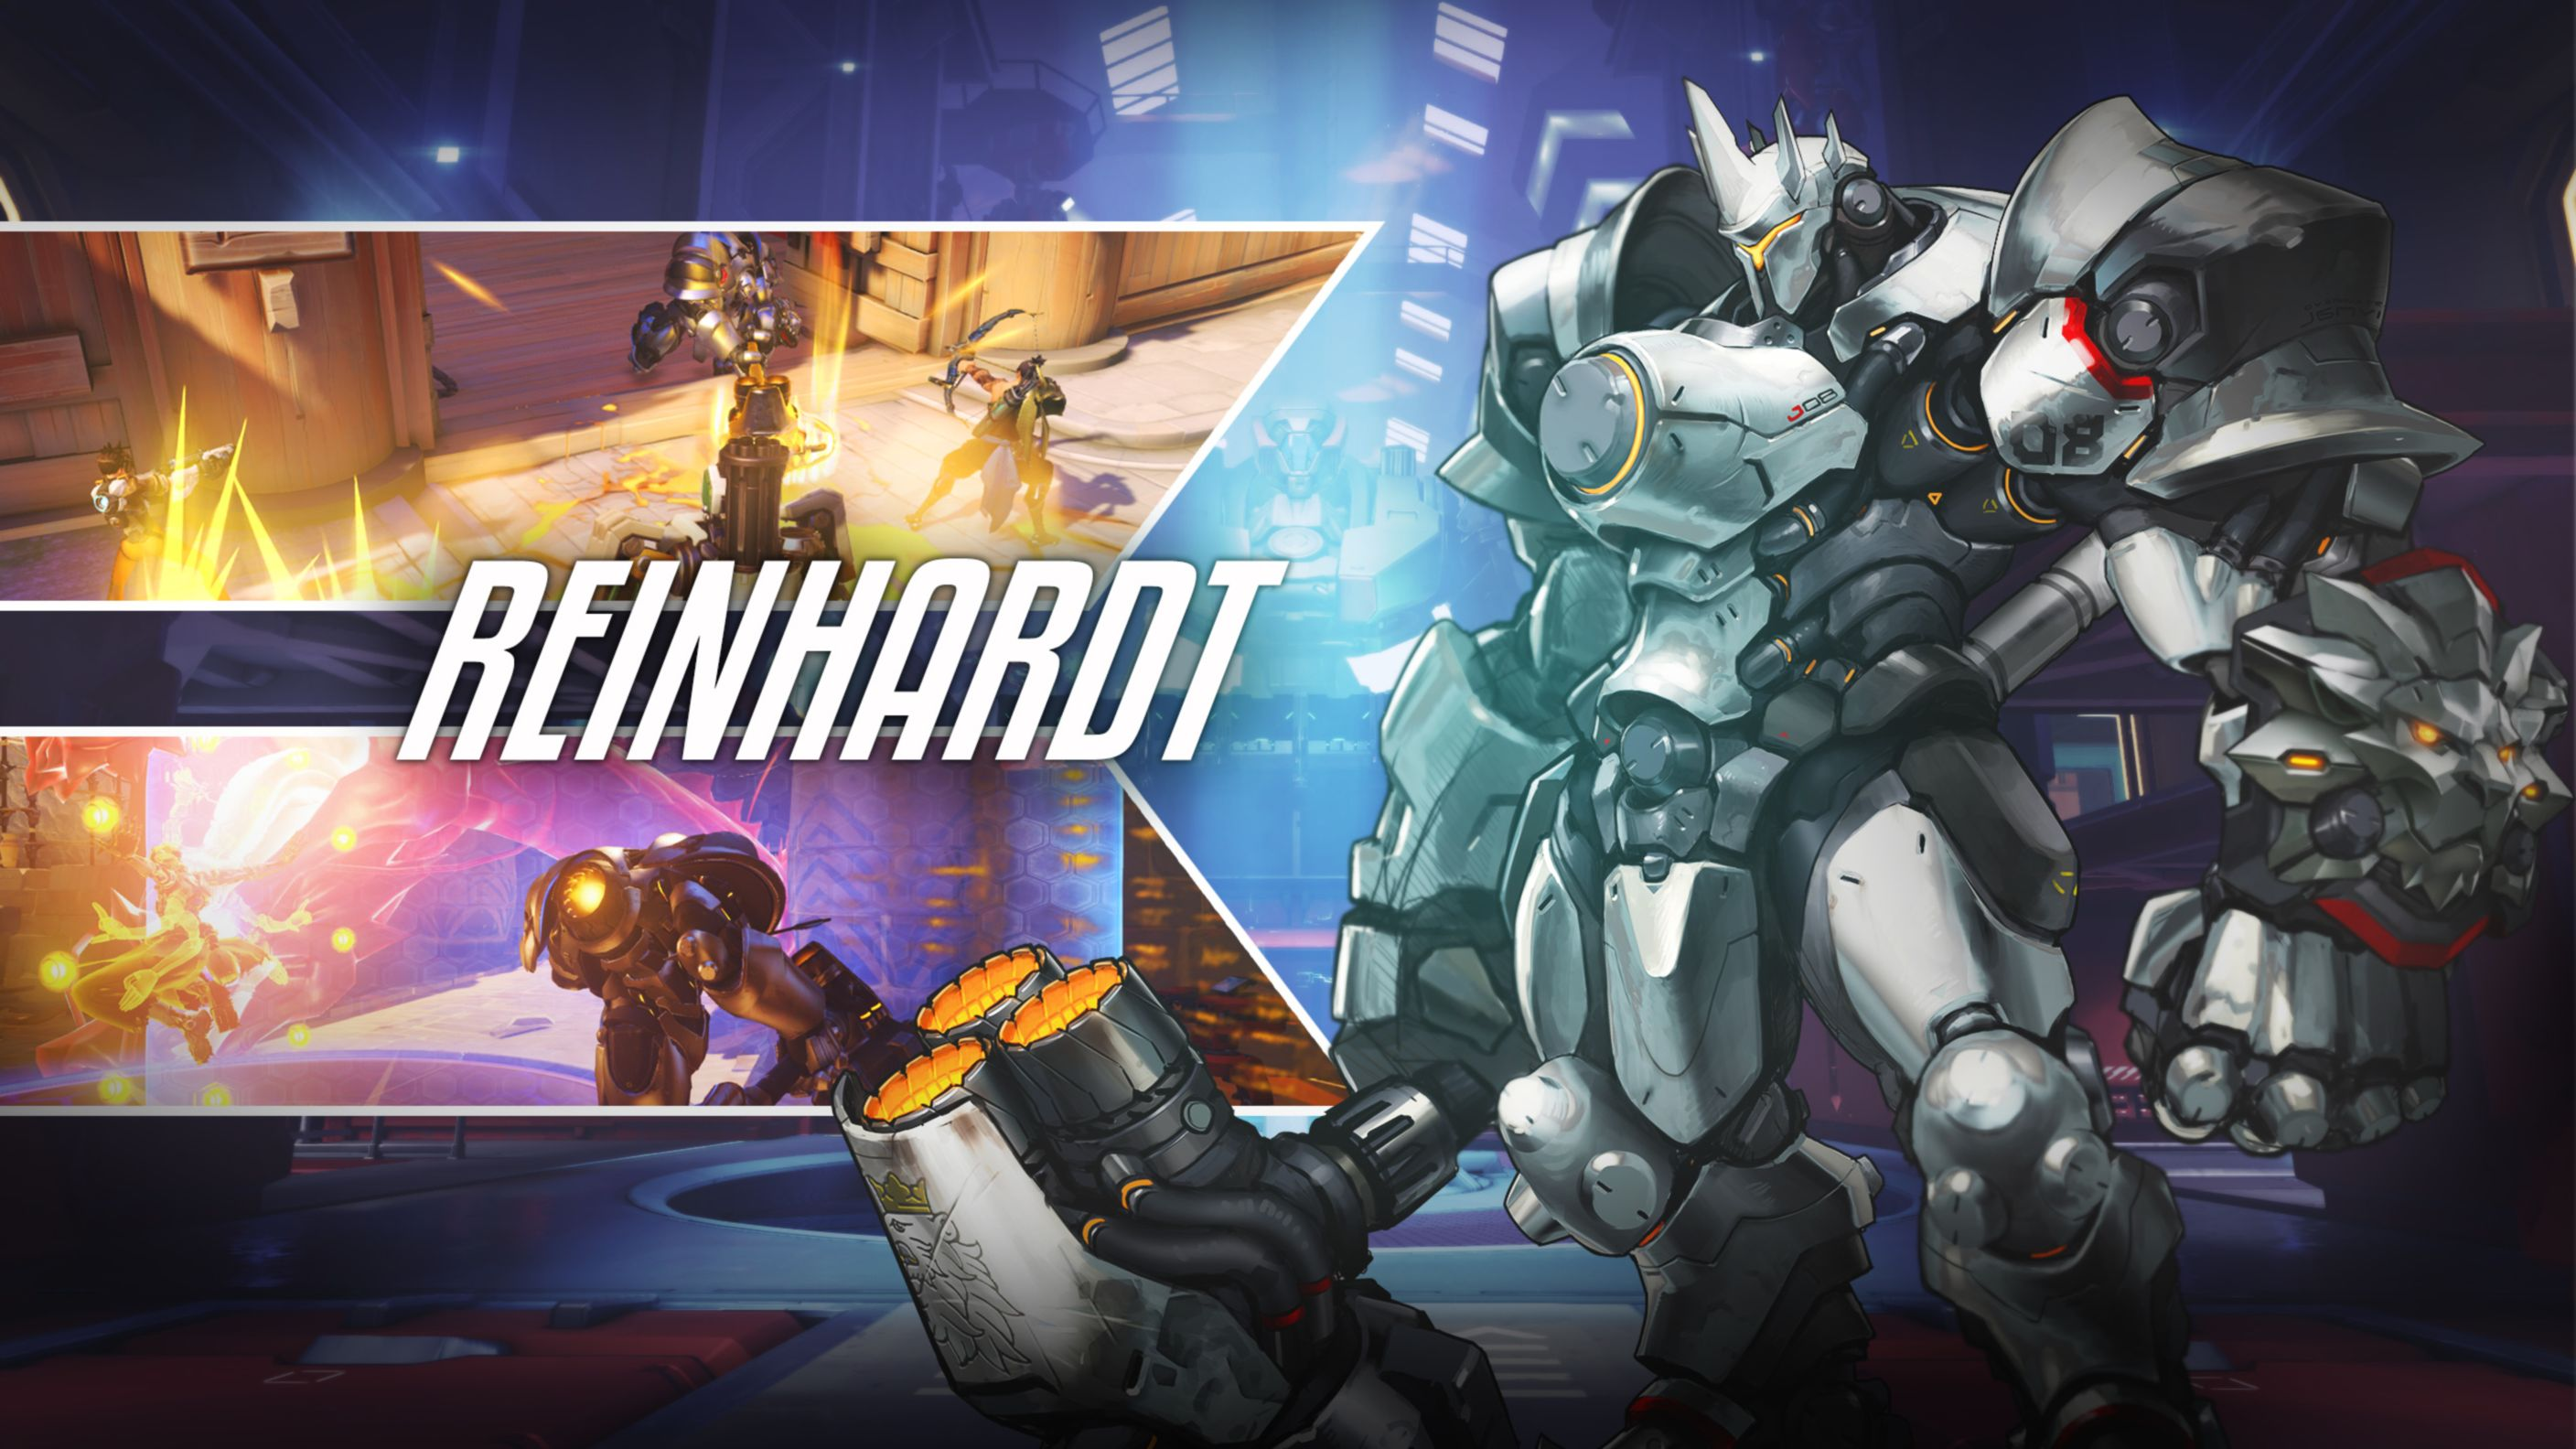 Download free HD Reinhardt Overwatch HD Wallpaper, image